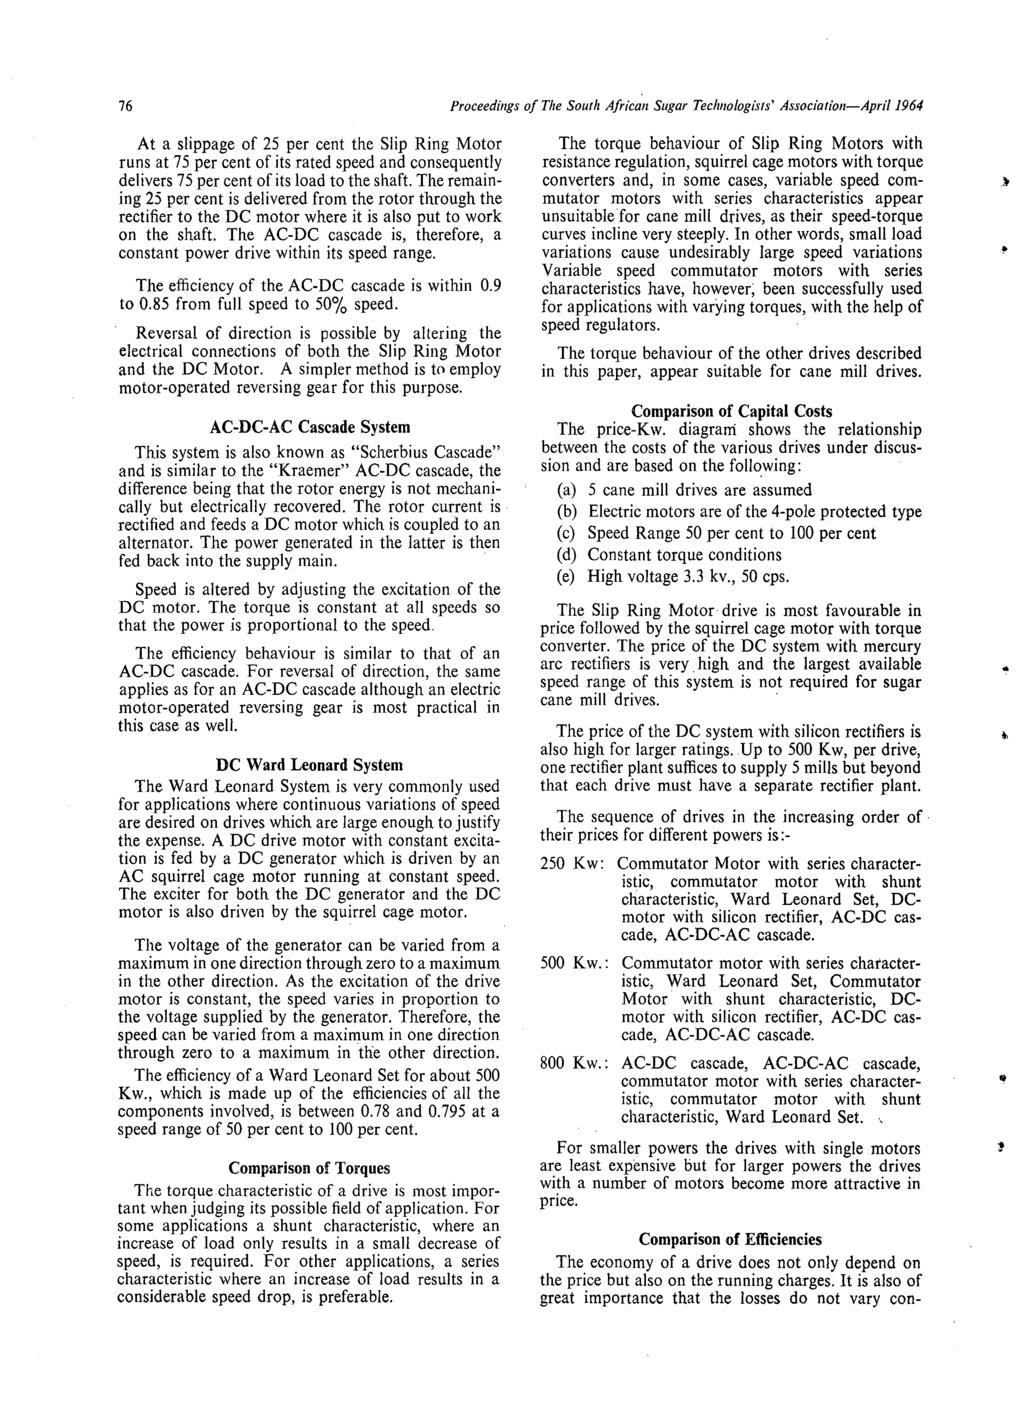 Comparison Of Various Electrical Drives Suitable For Cane Crushing Dc Shunt Motor Wiring Diagram Also Besides 76 Proceedings The South African Sugar Technologists Association April 1964 At A Slippage